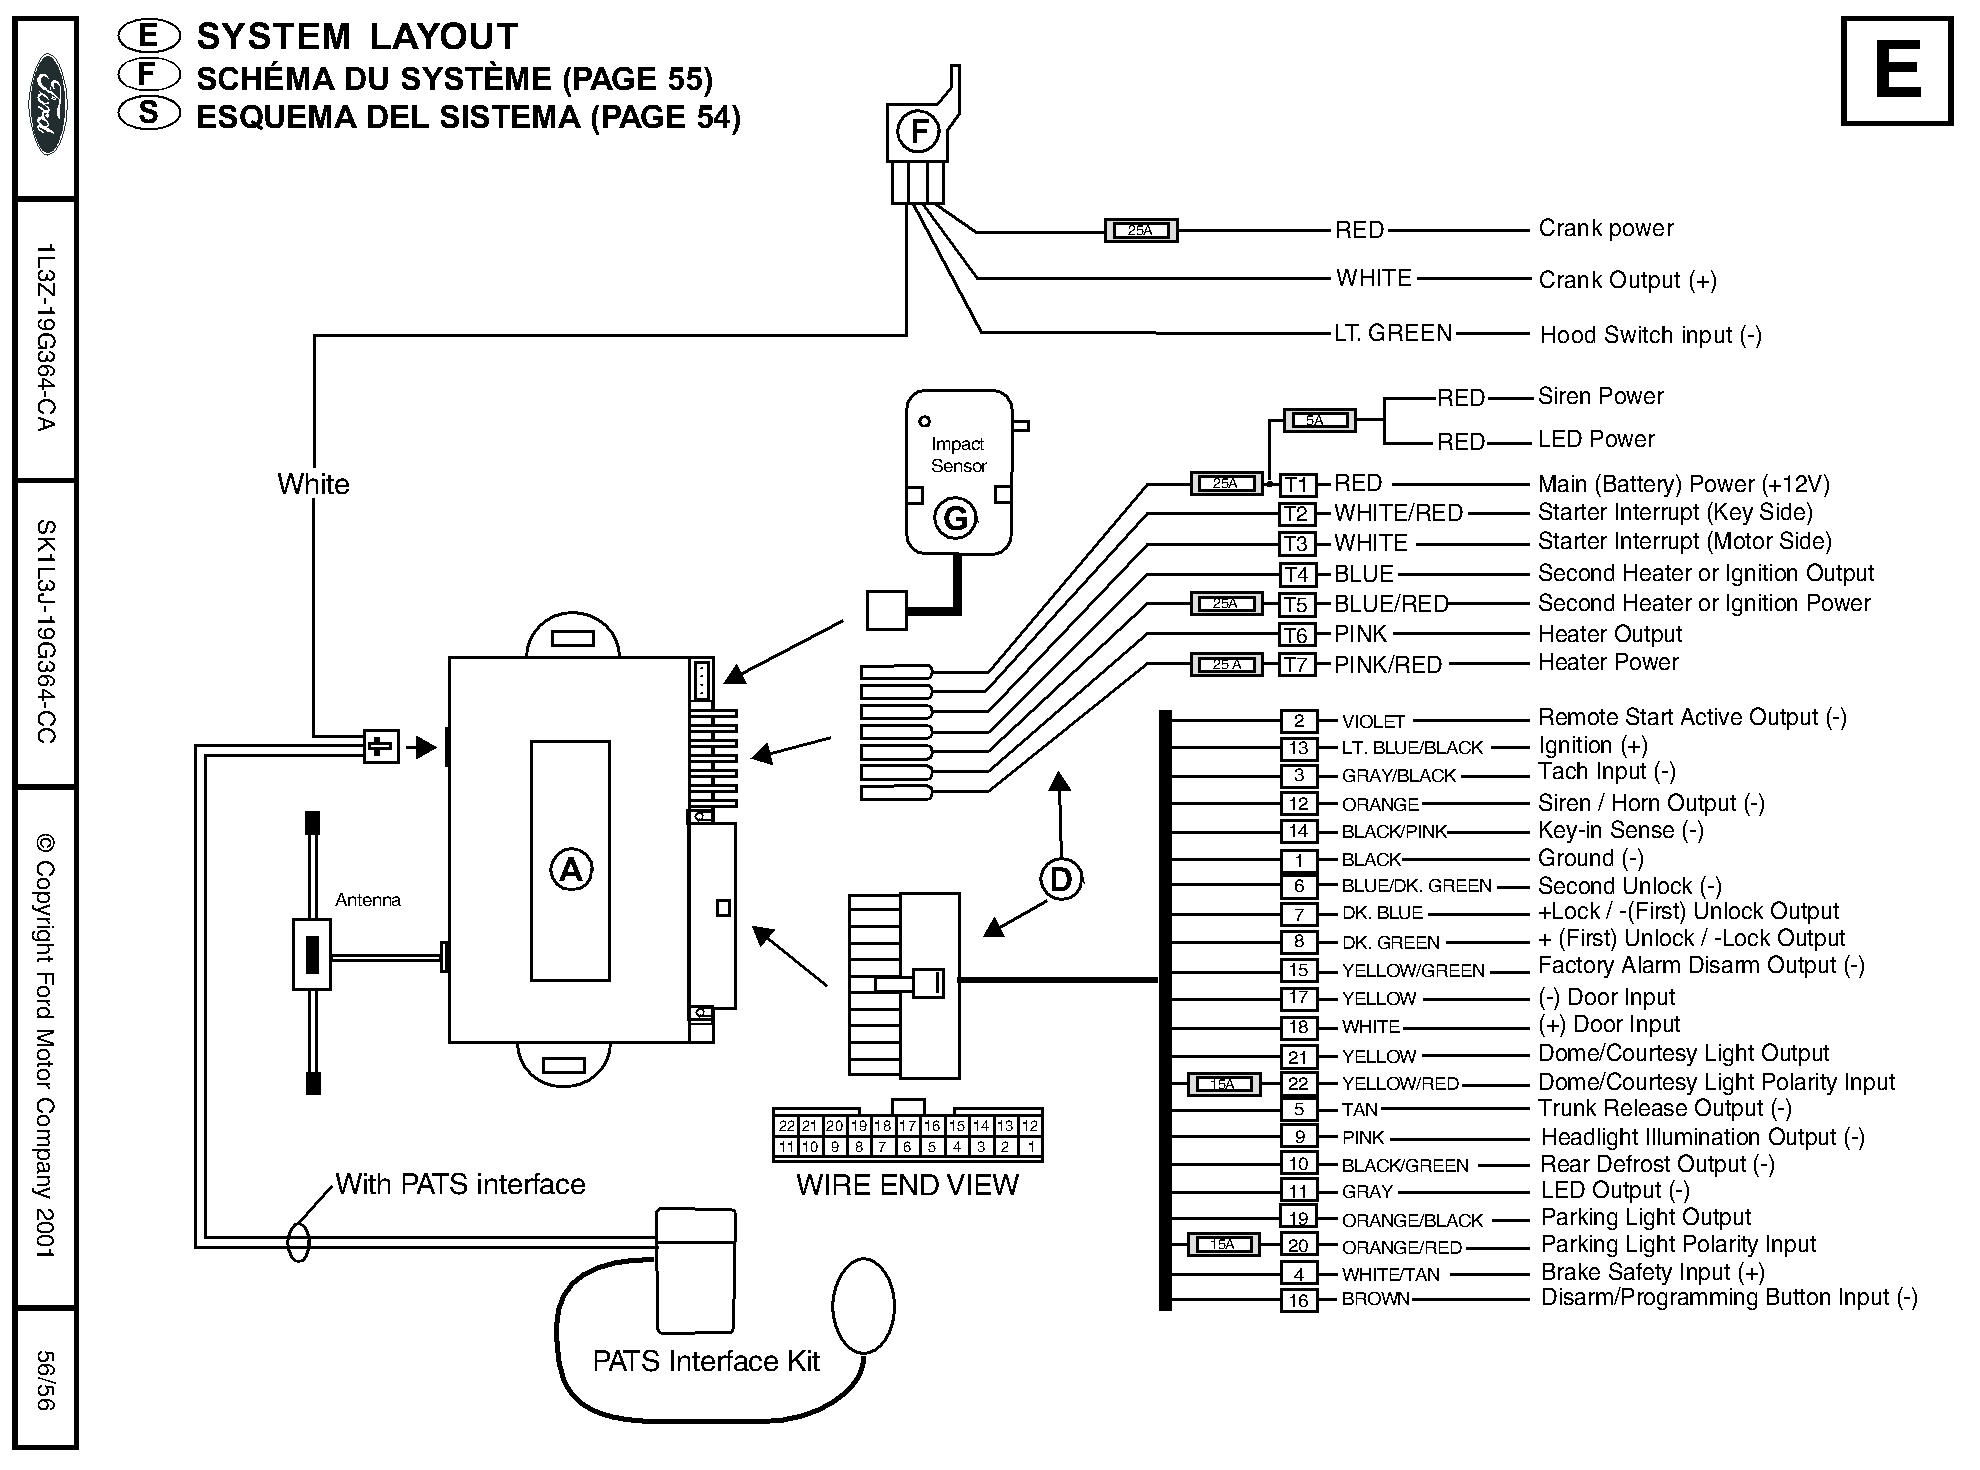 Gm Pcm Pinout Diagram together with 4mrrg Jeep Grand Cherokee Laredo 1999 Jeep Grand Cherokee Loredo Getting further 1208104 O2 Sensor Confusion 2 as well 39mn3 Pcm Located 2006 Malibu 2 2l together with Discussion C3724 ds555392. on 2004 chevy silverado pcm